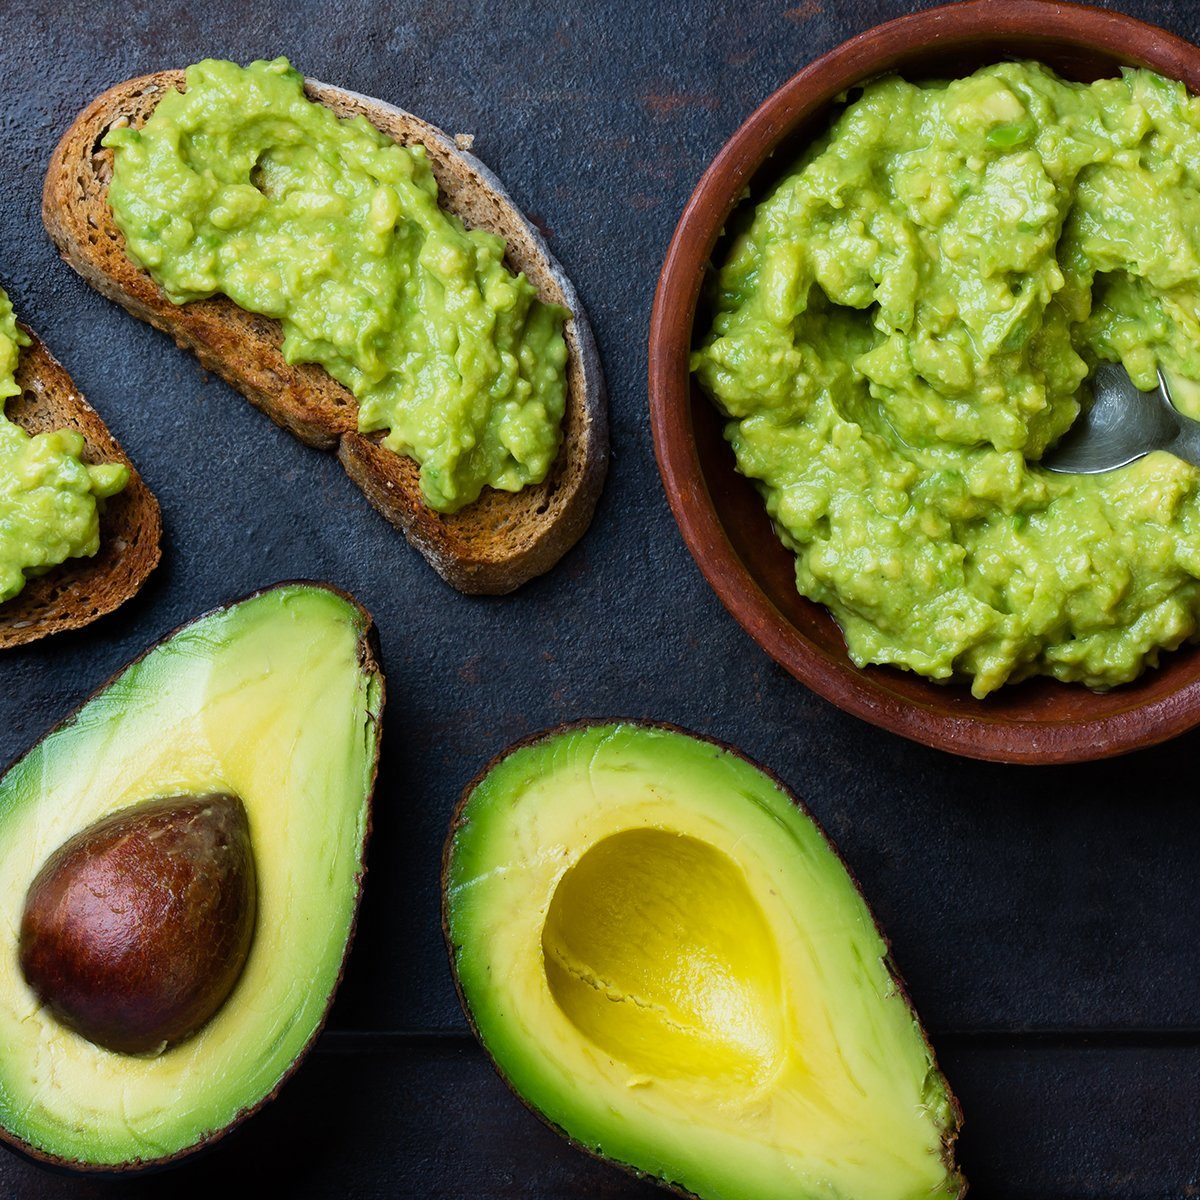 Traditional latinamerican mexican sauce guacamole in clay bowl, cut half avocado and avocado sandwiches on dark background.